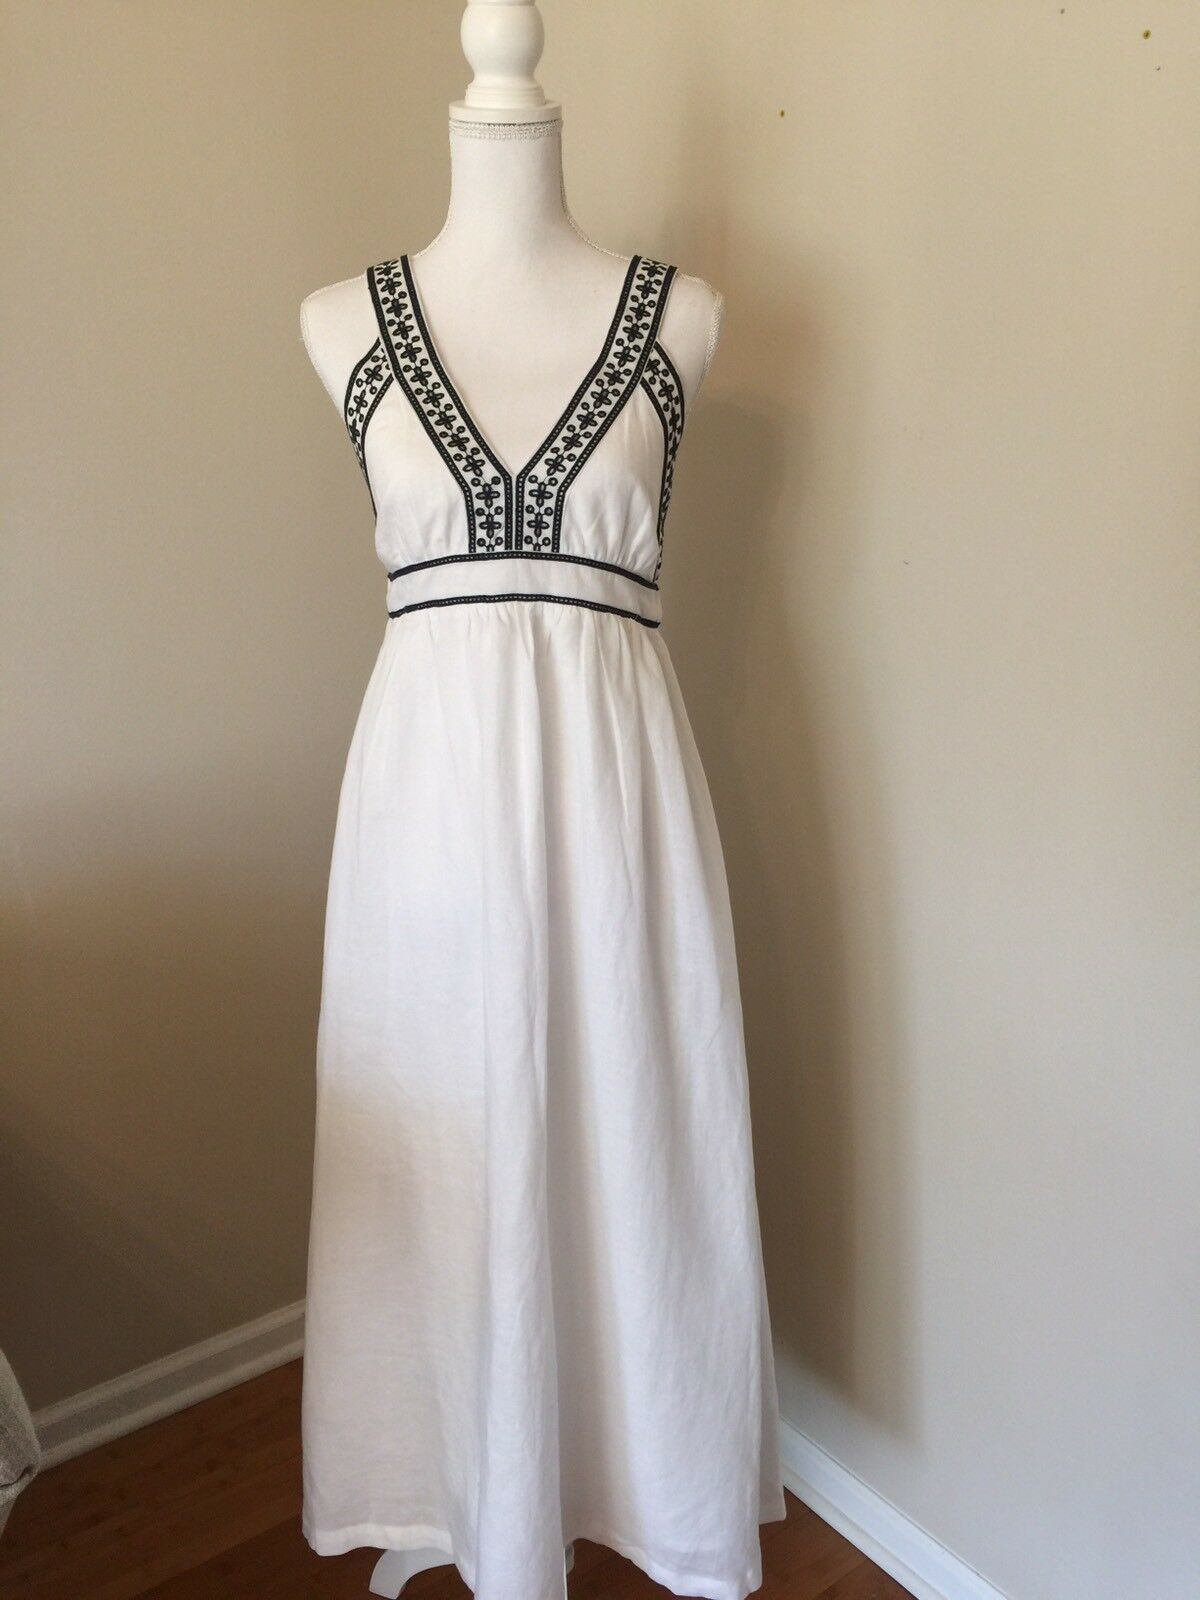 J.CREW NWT  Embroiderot Lined Cross Back Maxi Dress Sz S G6494 Weiß